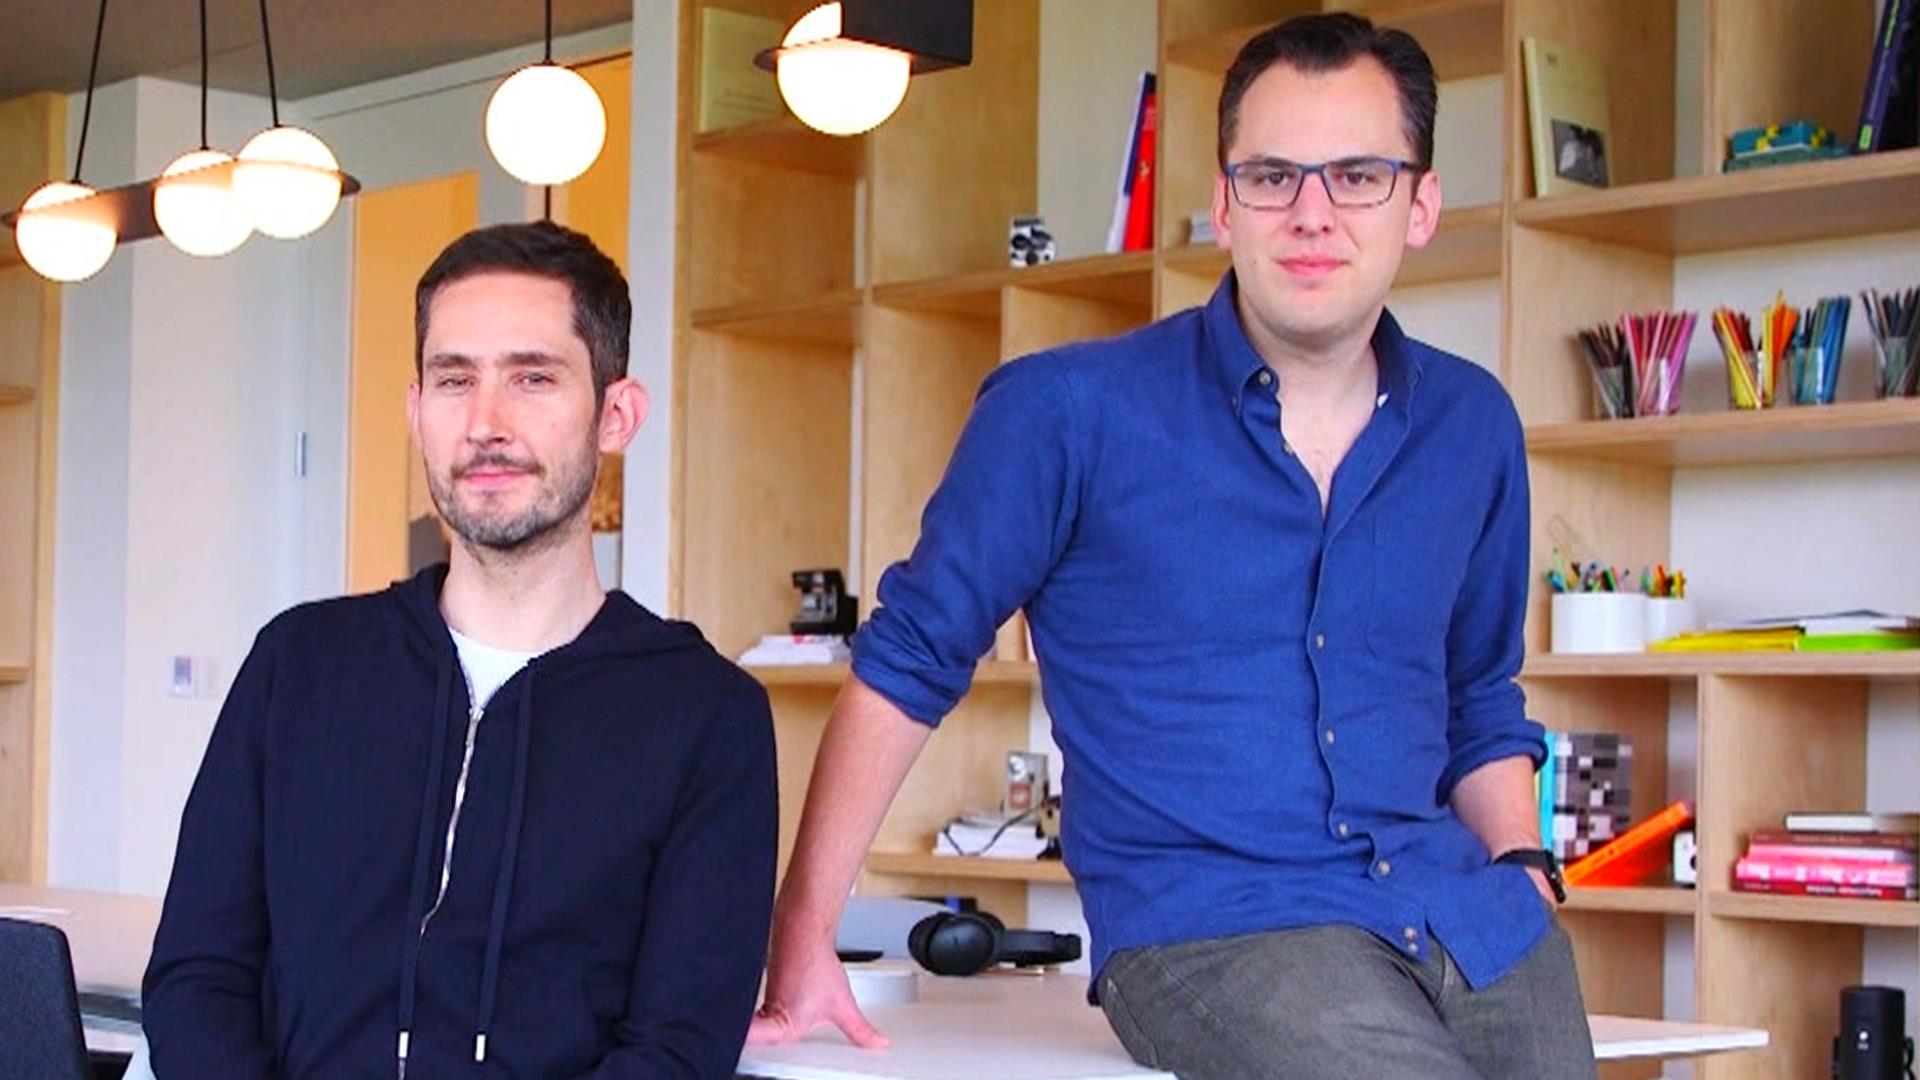 Instagram founders on success of their app: 'Beyond our